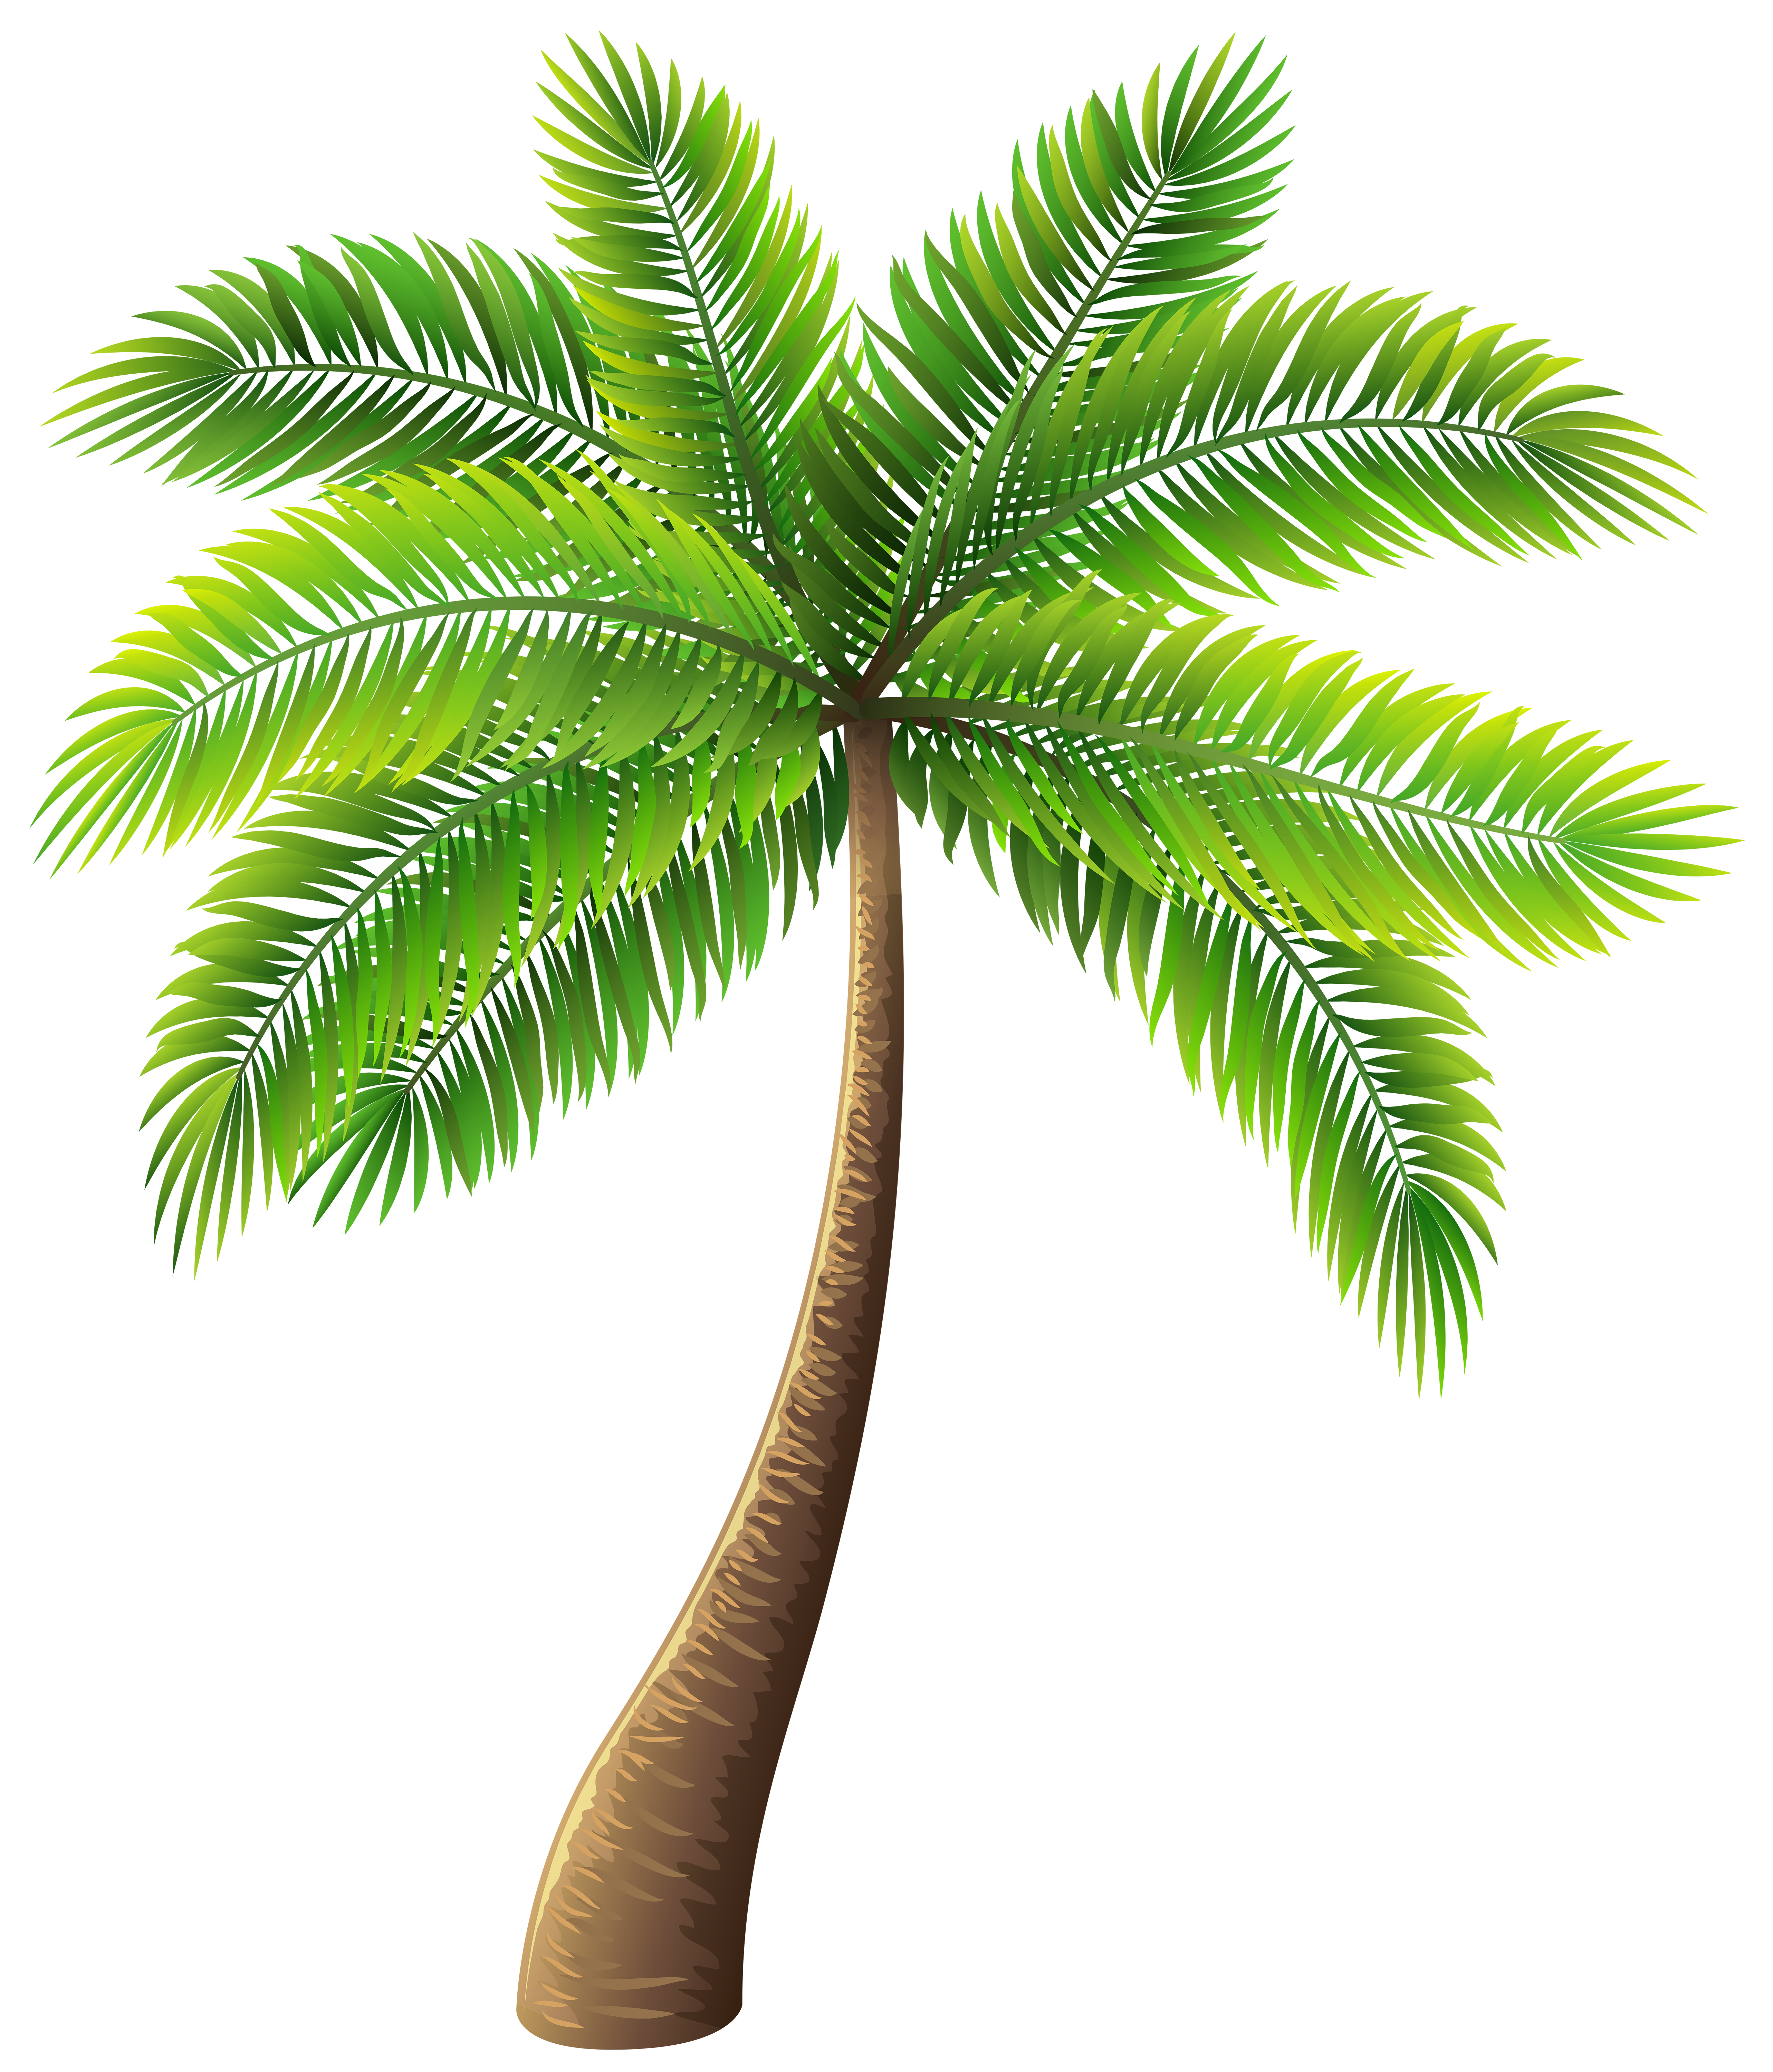 Palm Tree Free Transparent Png